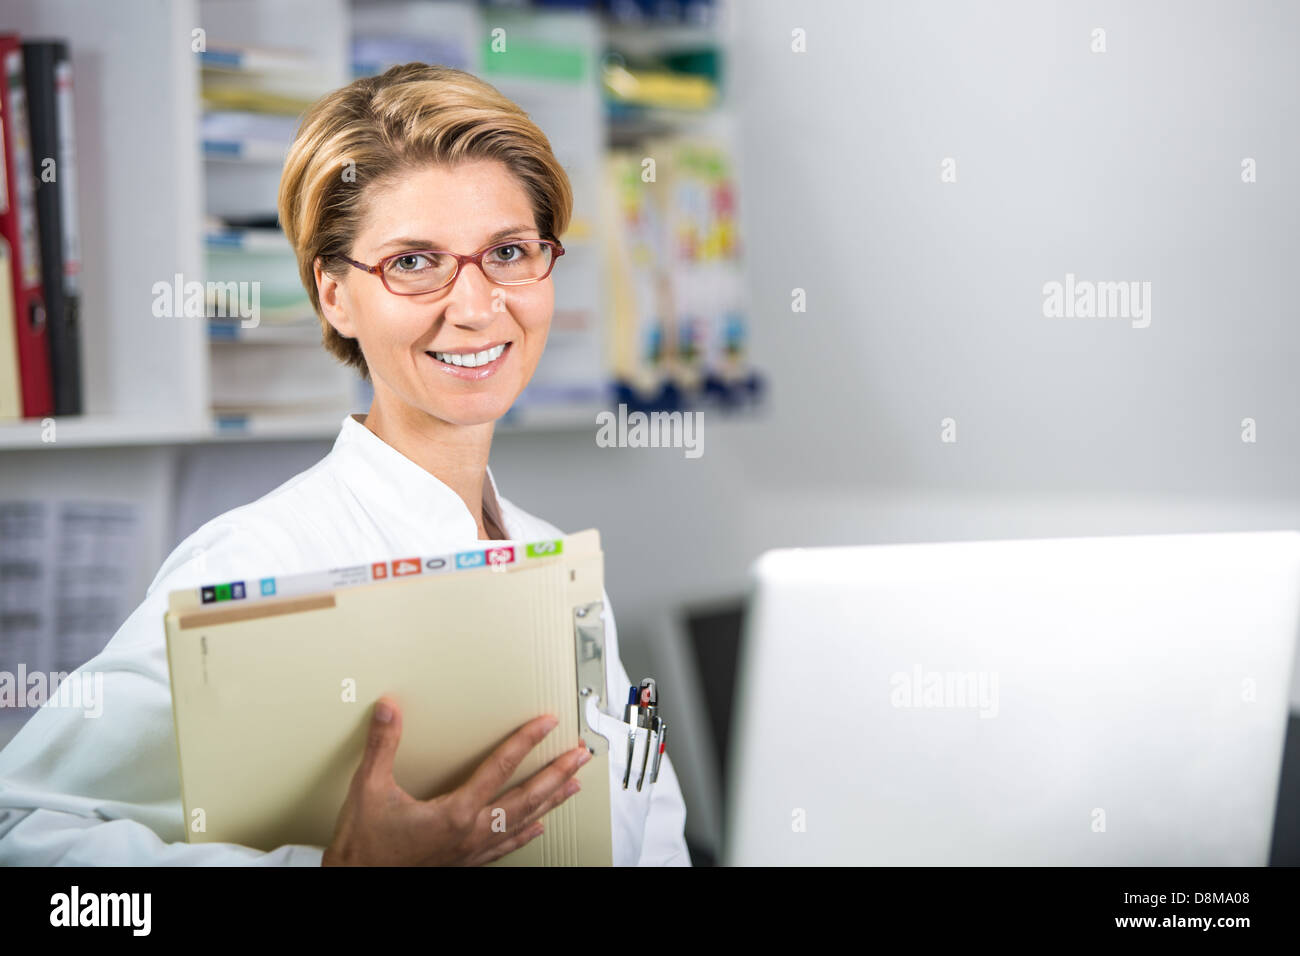 Young doctor with medical records and laptop - Stock Image